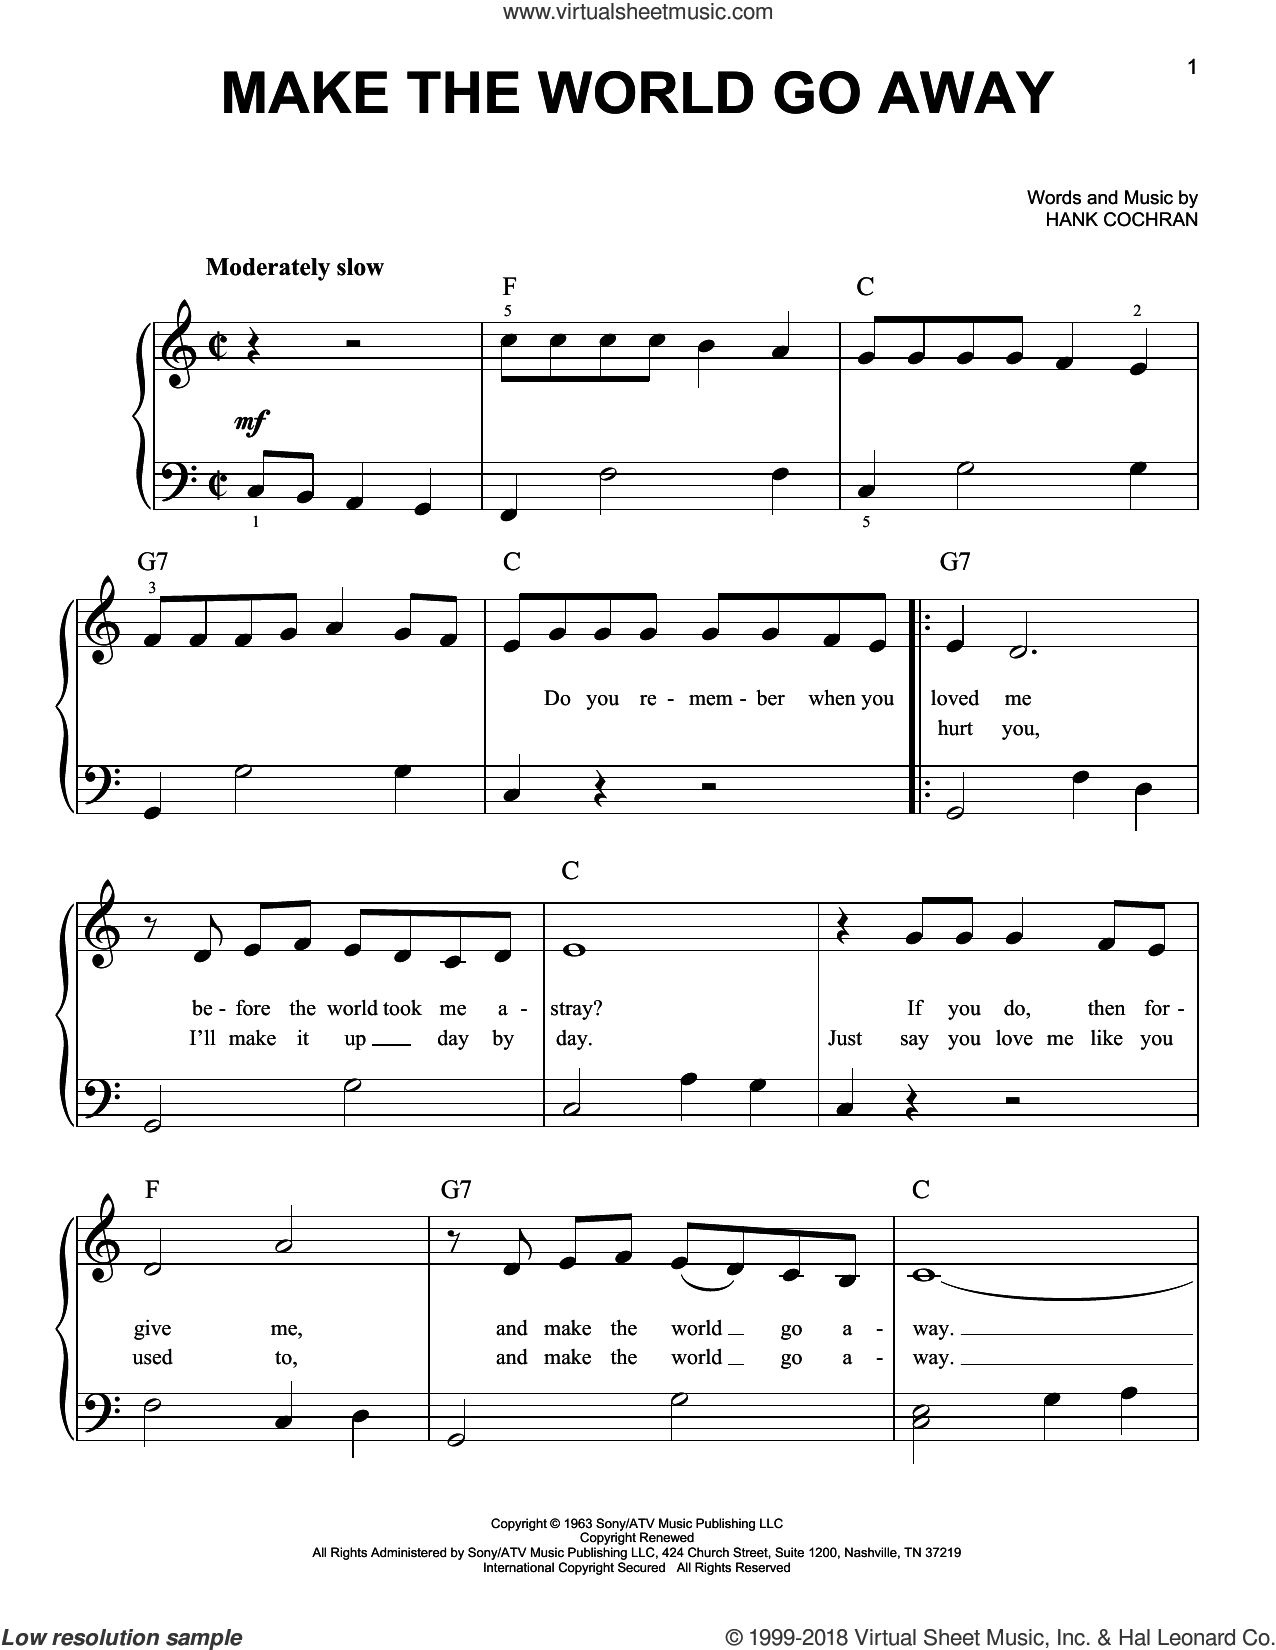 Make The World Go Away sheet music for piano solo by Eddy Arnold, Elvis Presley, Ray Price and Hank Cochran, beginner skill level